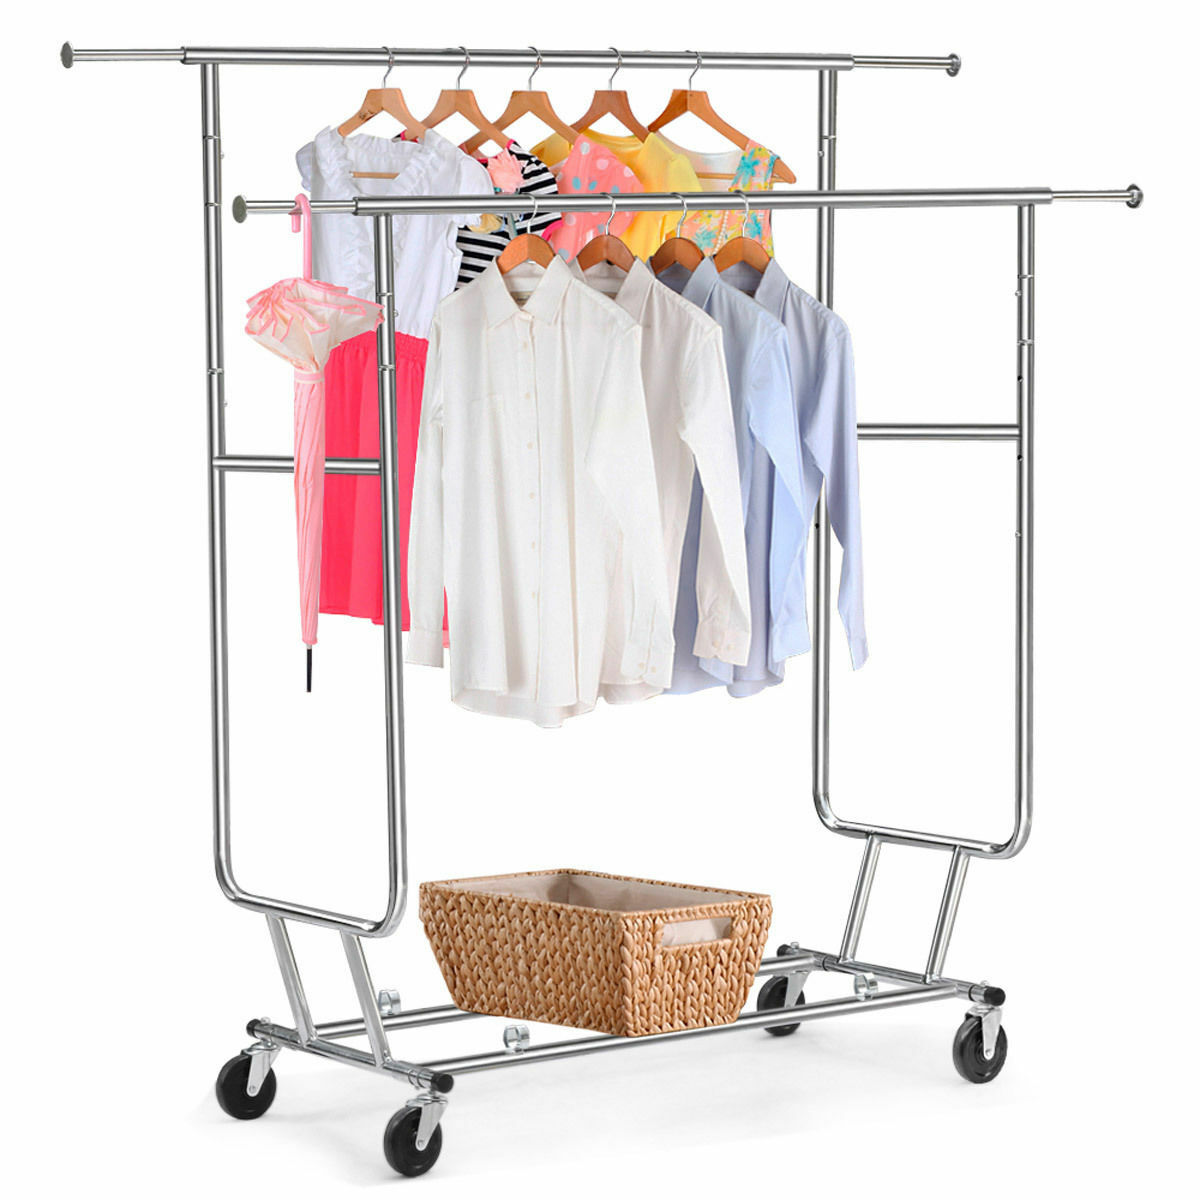 Heavy Duty Double Adjustable Portable Clothes Dry Hanger